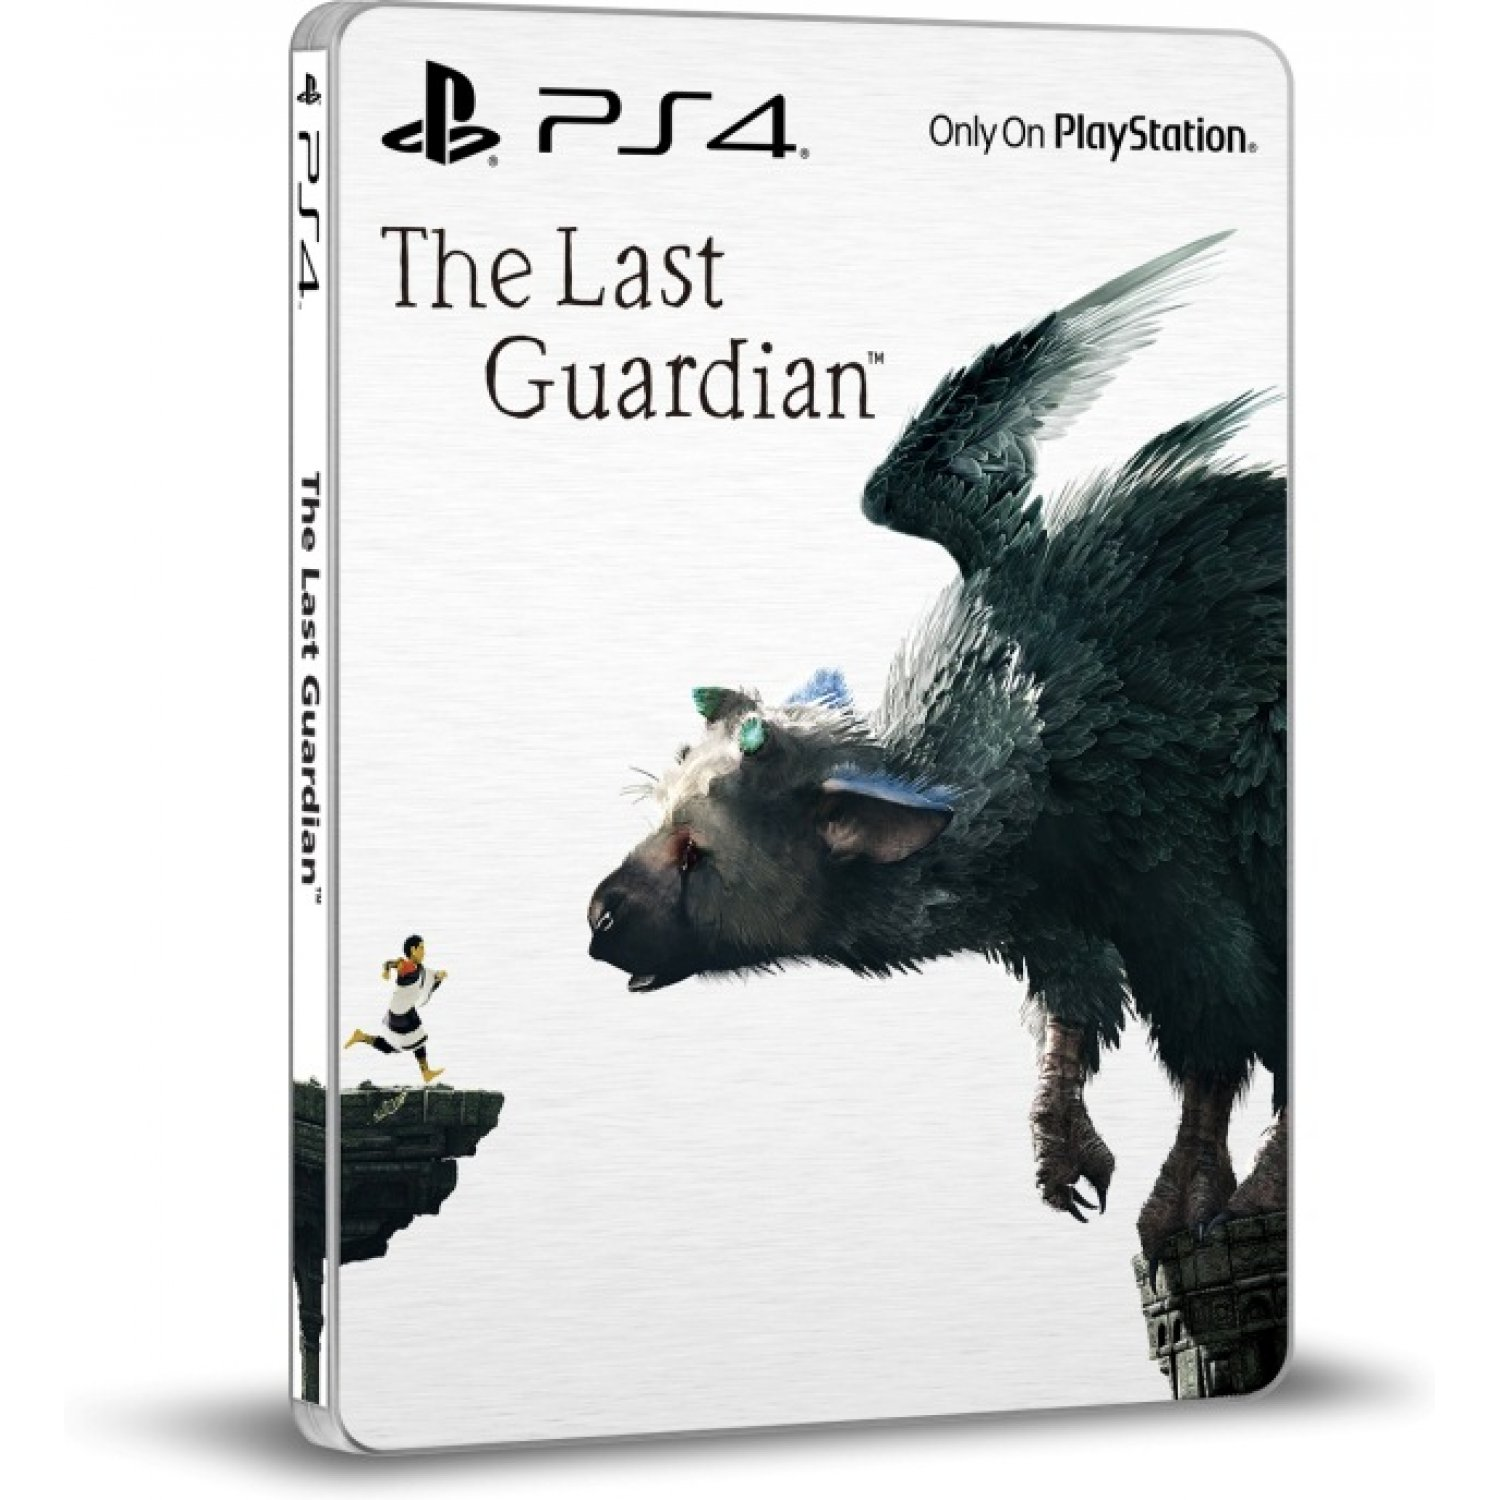 The Last Guardian (Steelbook) - PlayStation 4 Játékok